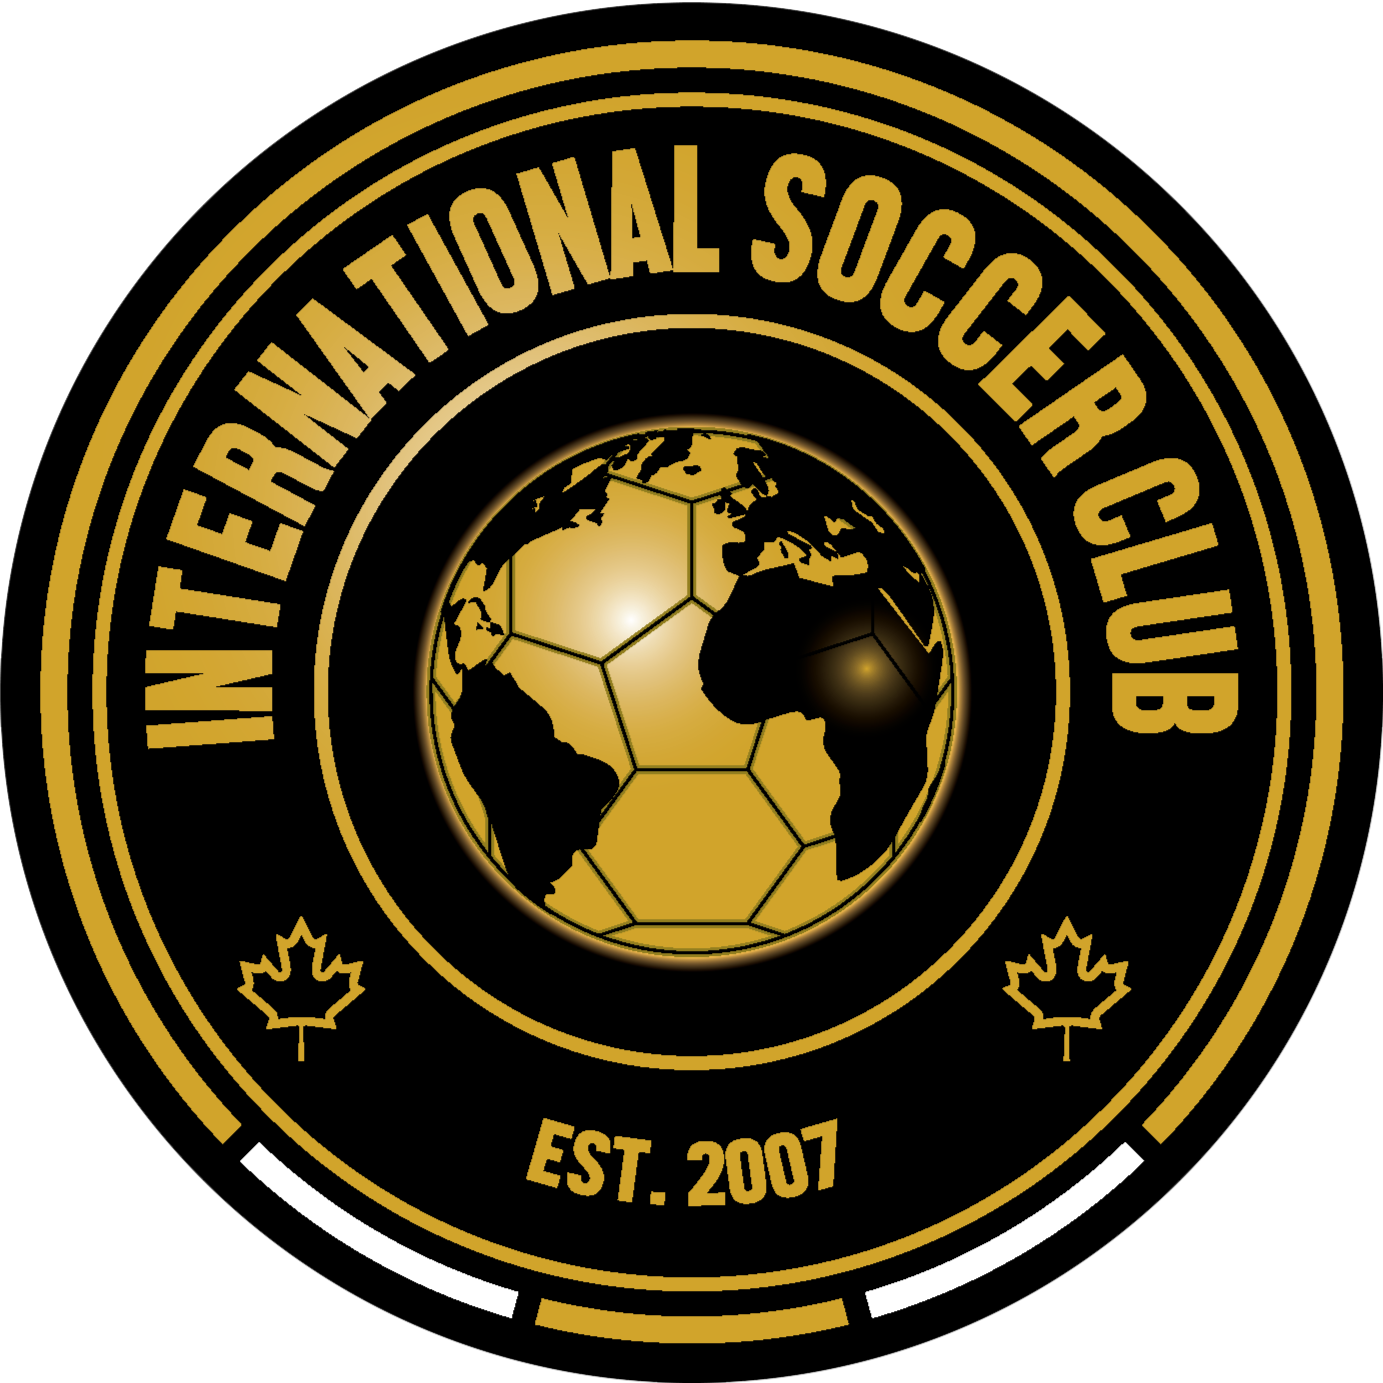 International Soccer Club